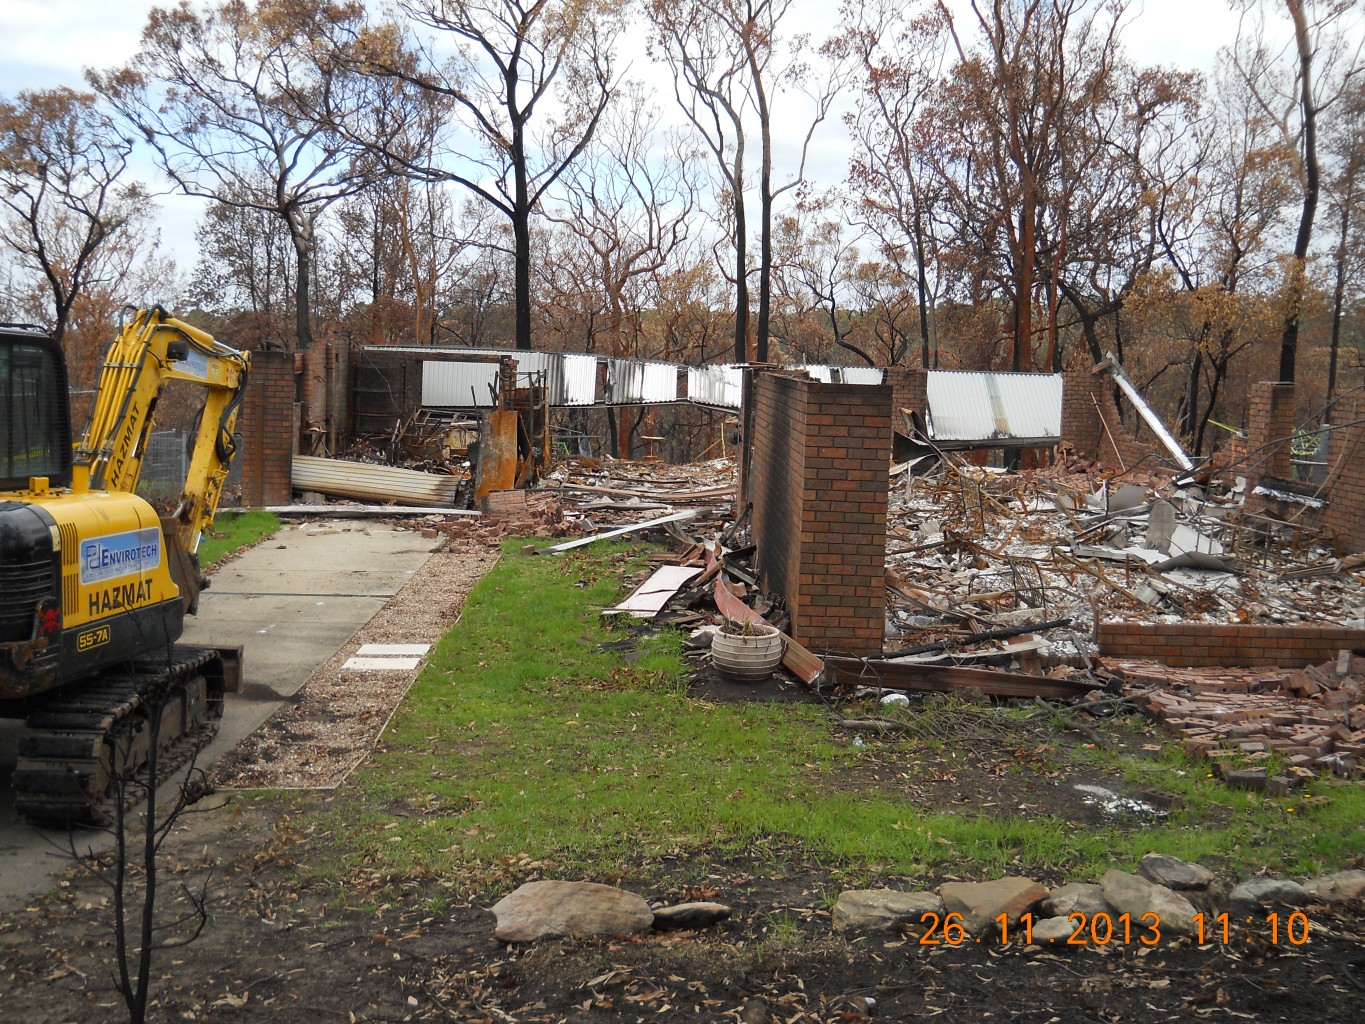 Fire Damaged House Excavation, Demolition And Removal